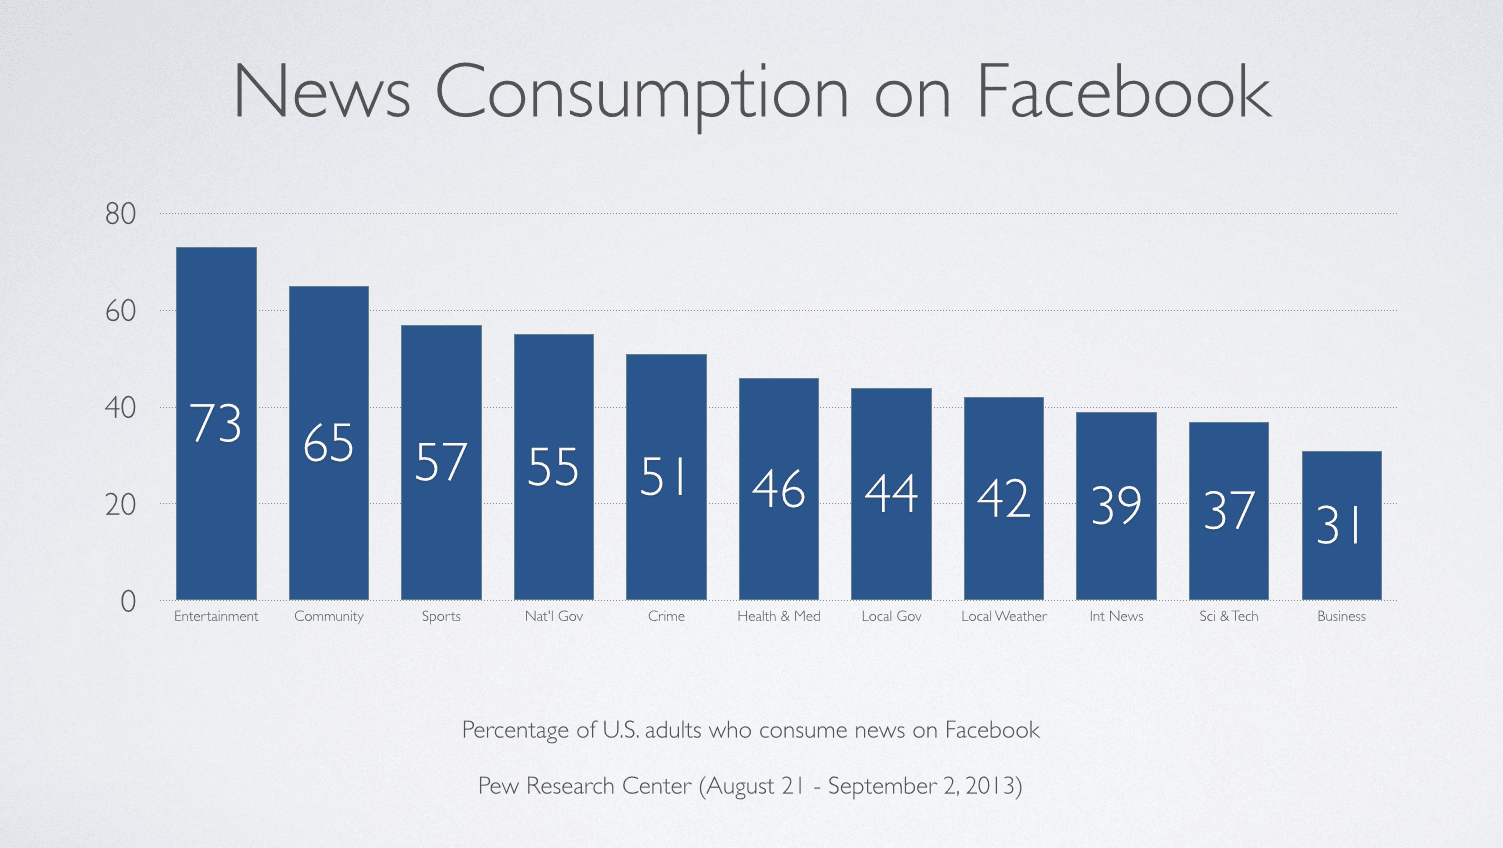 News Consumption on Facebook